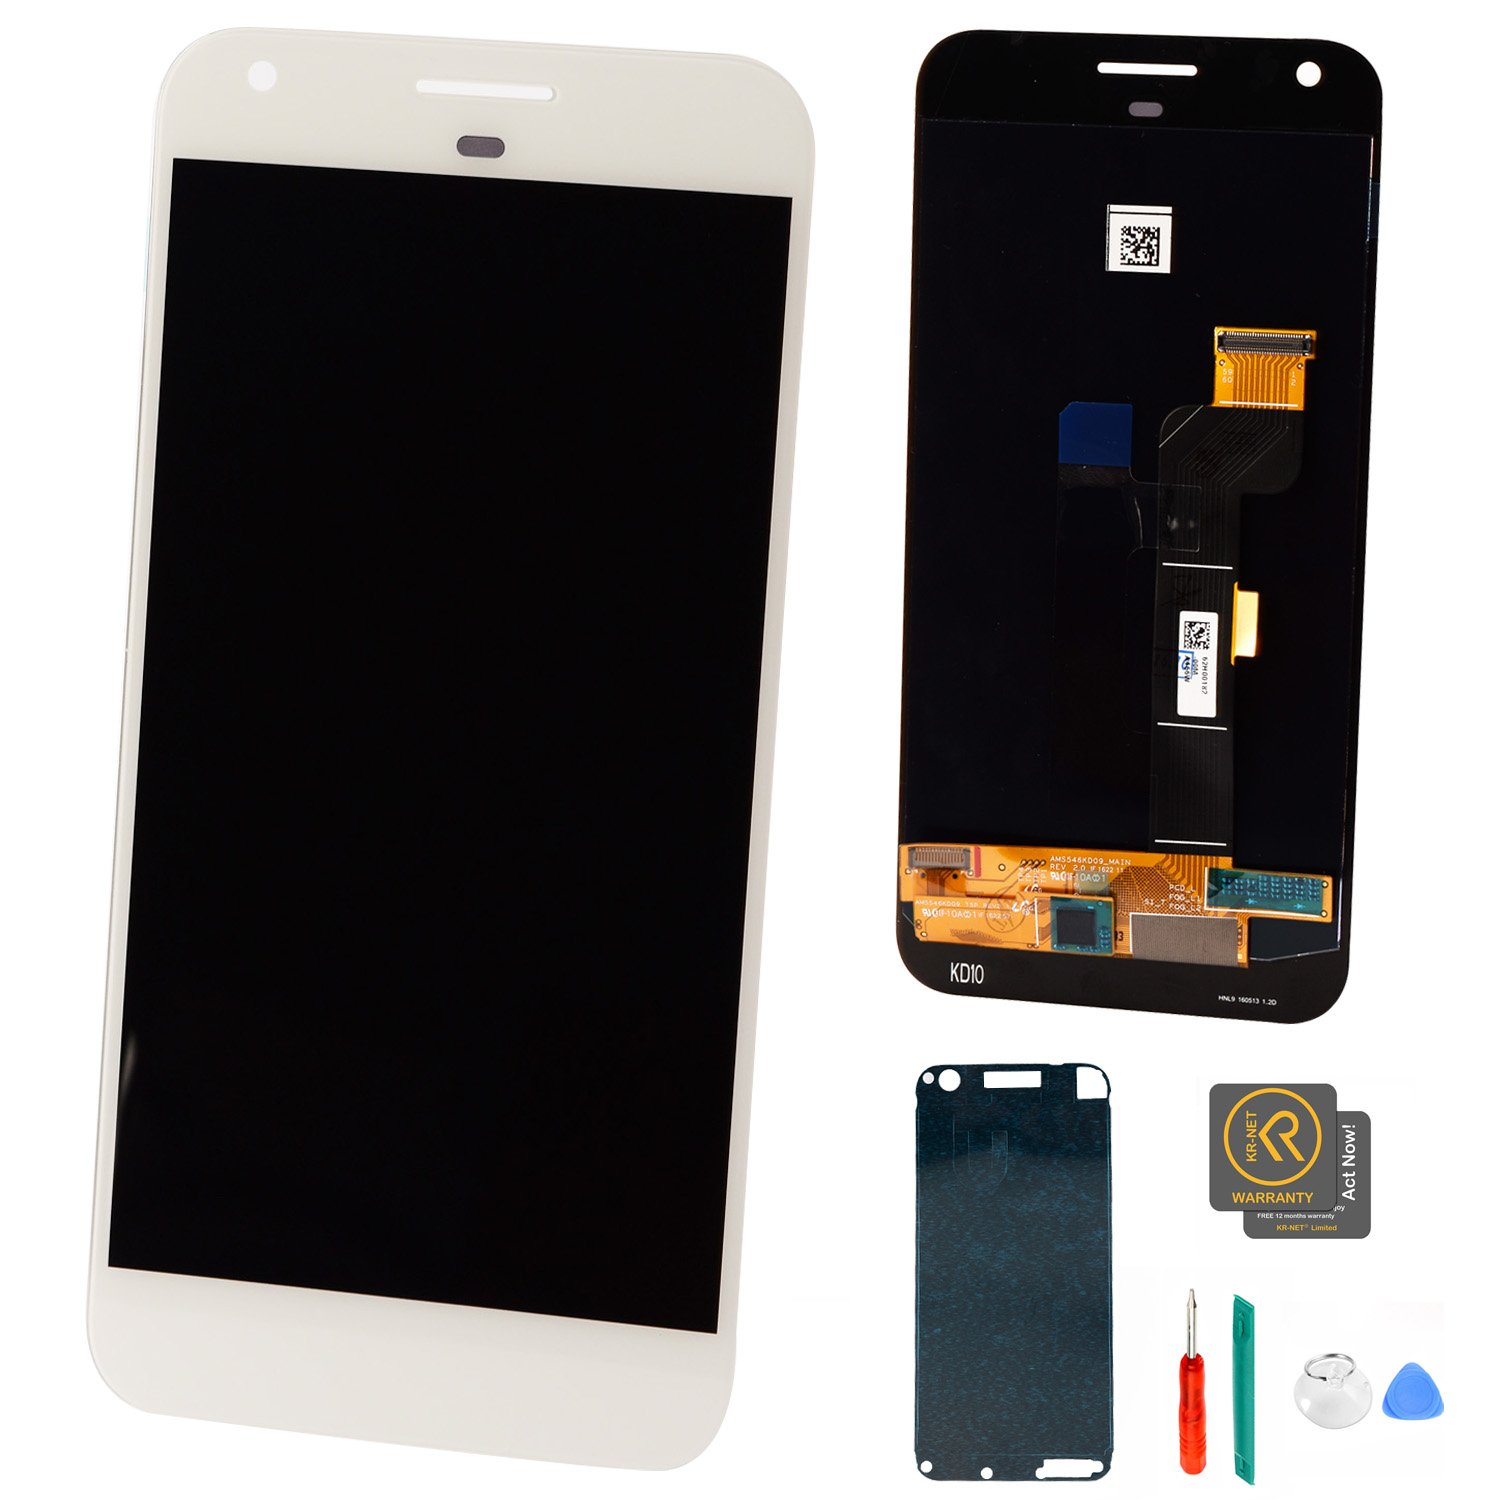 KR-NET 5.5'' LCD Display Touch Screen Digitizer Assembly for Google Pixel XL (Very Silver), with Tools